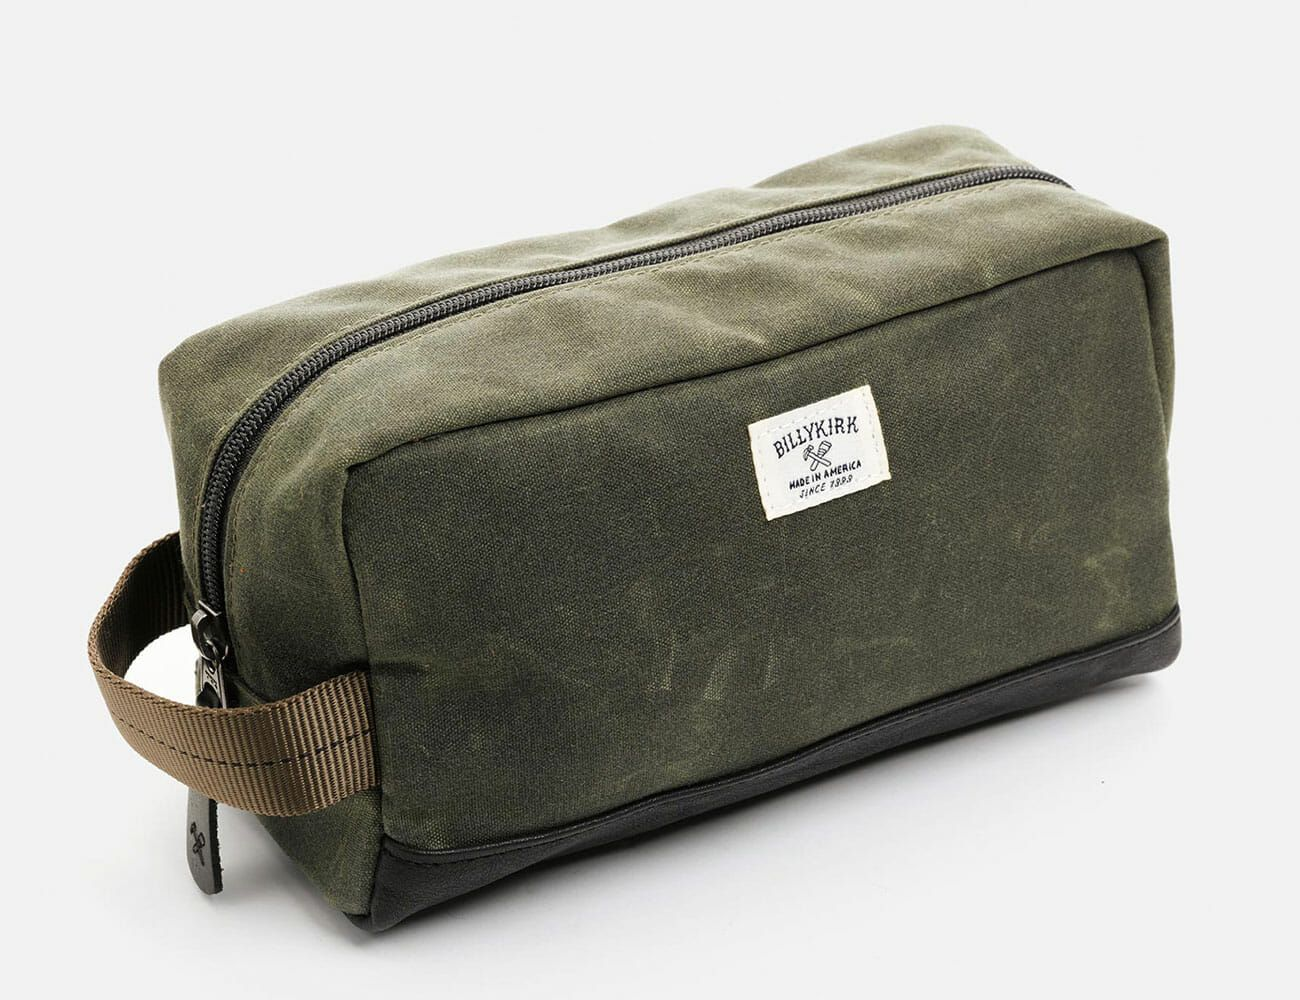 Billykirk-Toiletry-Bag-Grooming